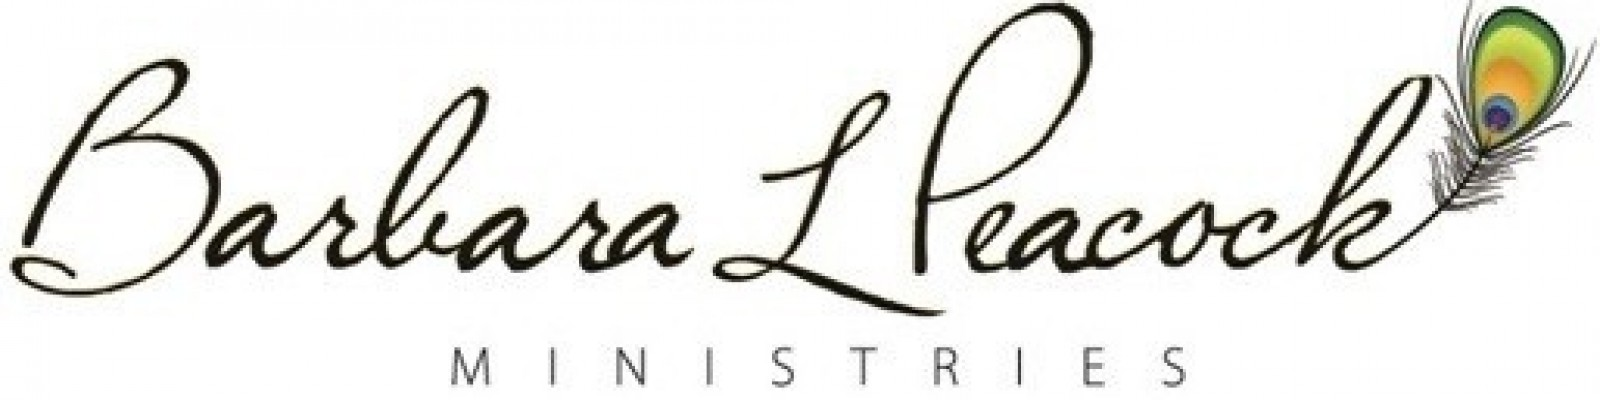 Barbara L. Peacock Ministries